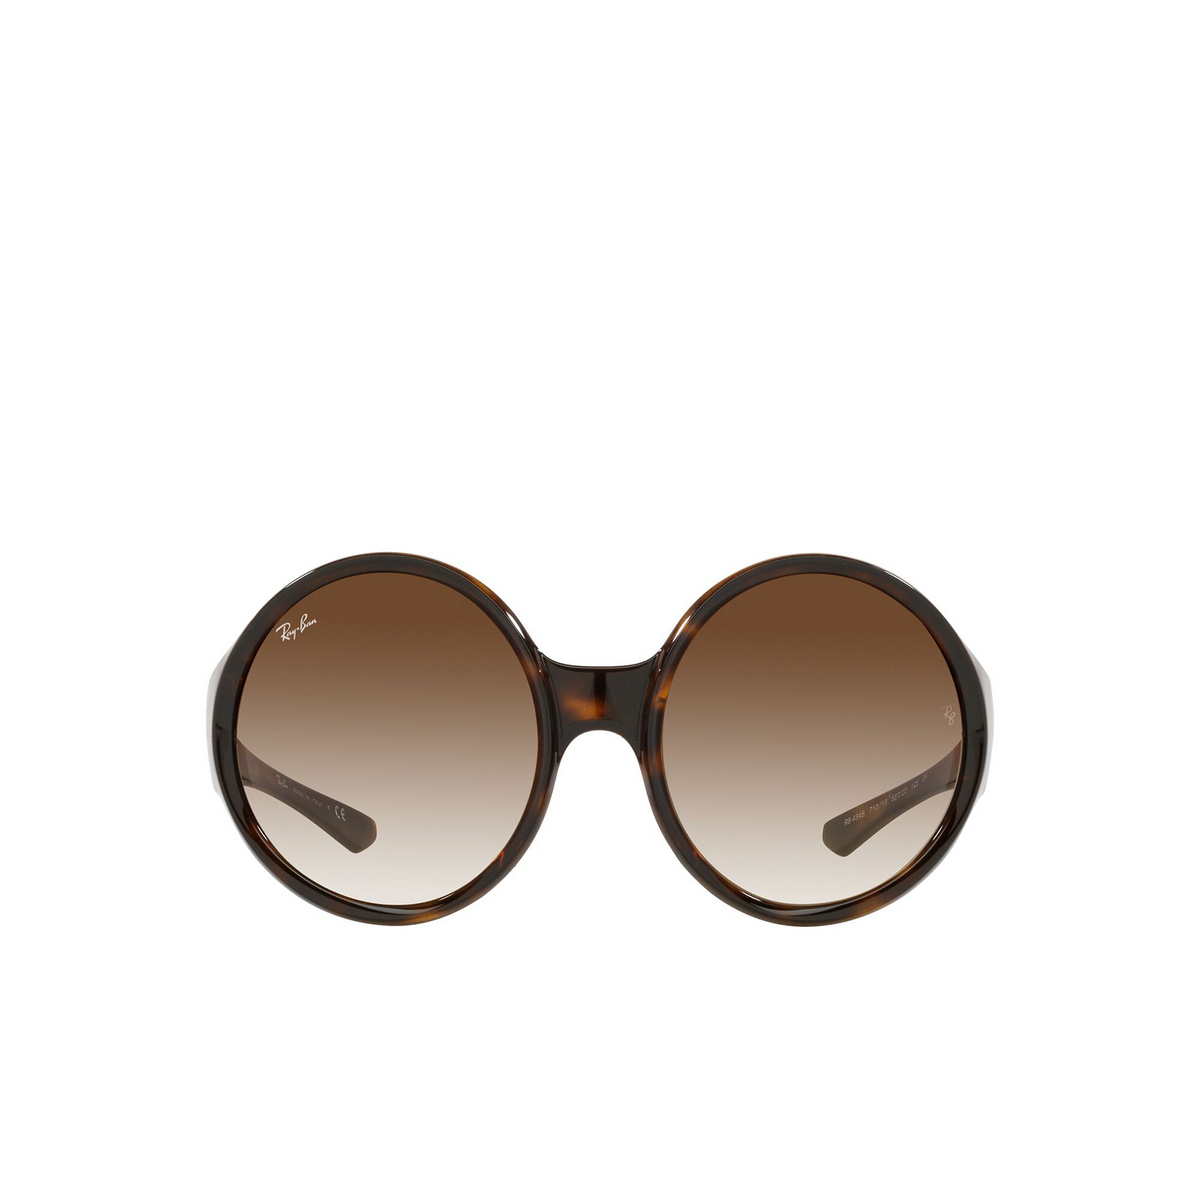 Ray-Ban® Round Sunglasses: RB4345 color Havana 710/13 - front view.